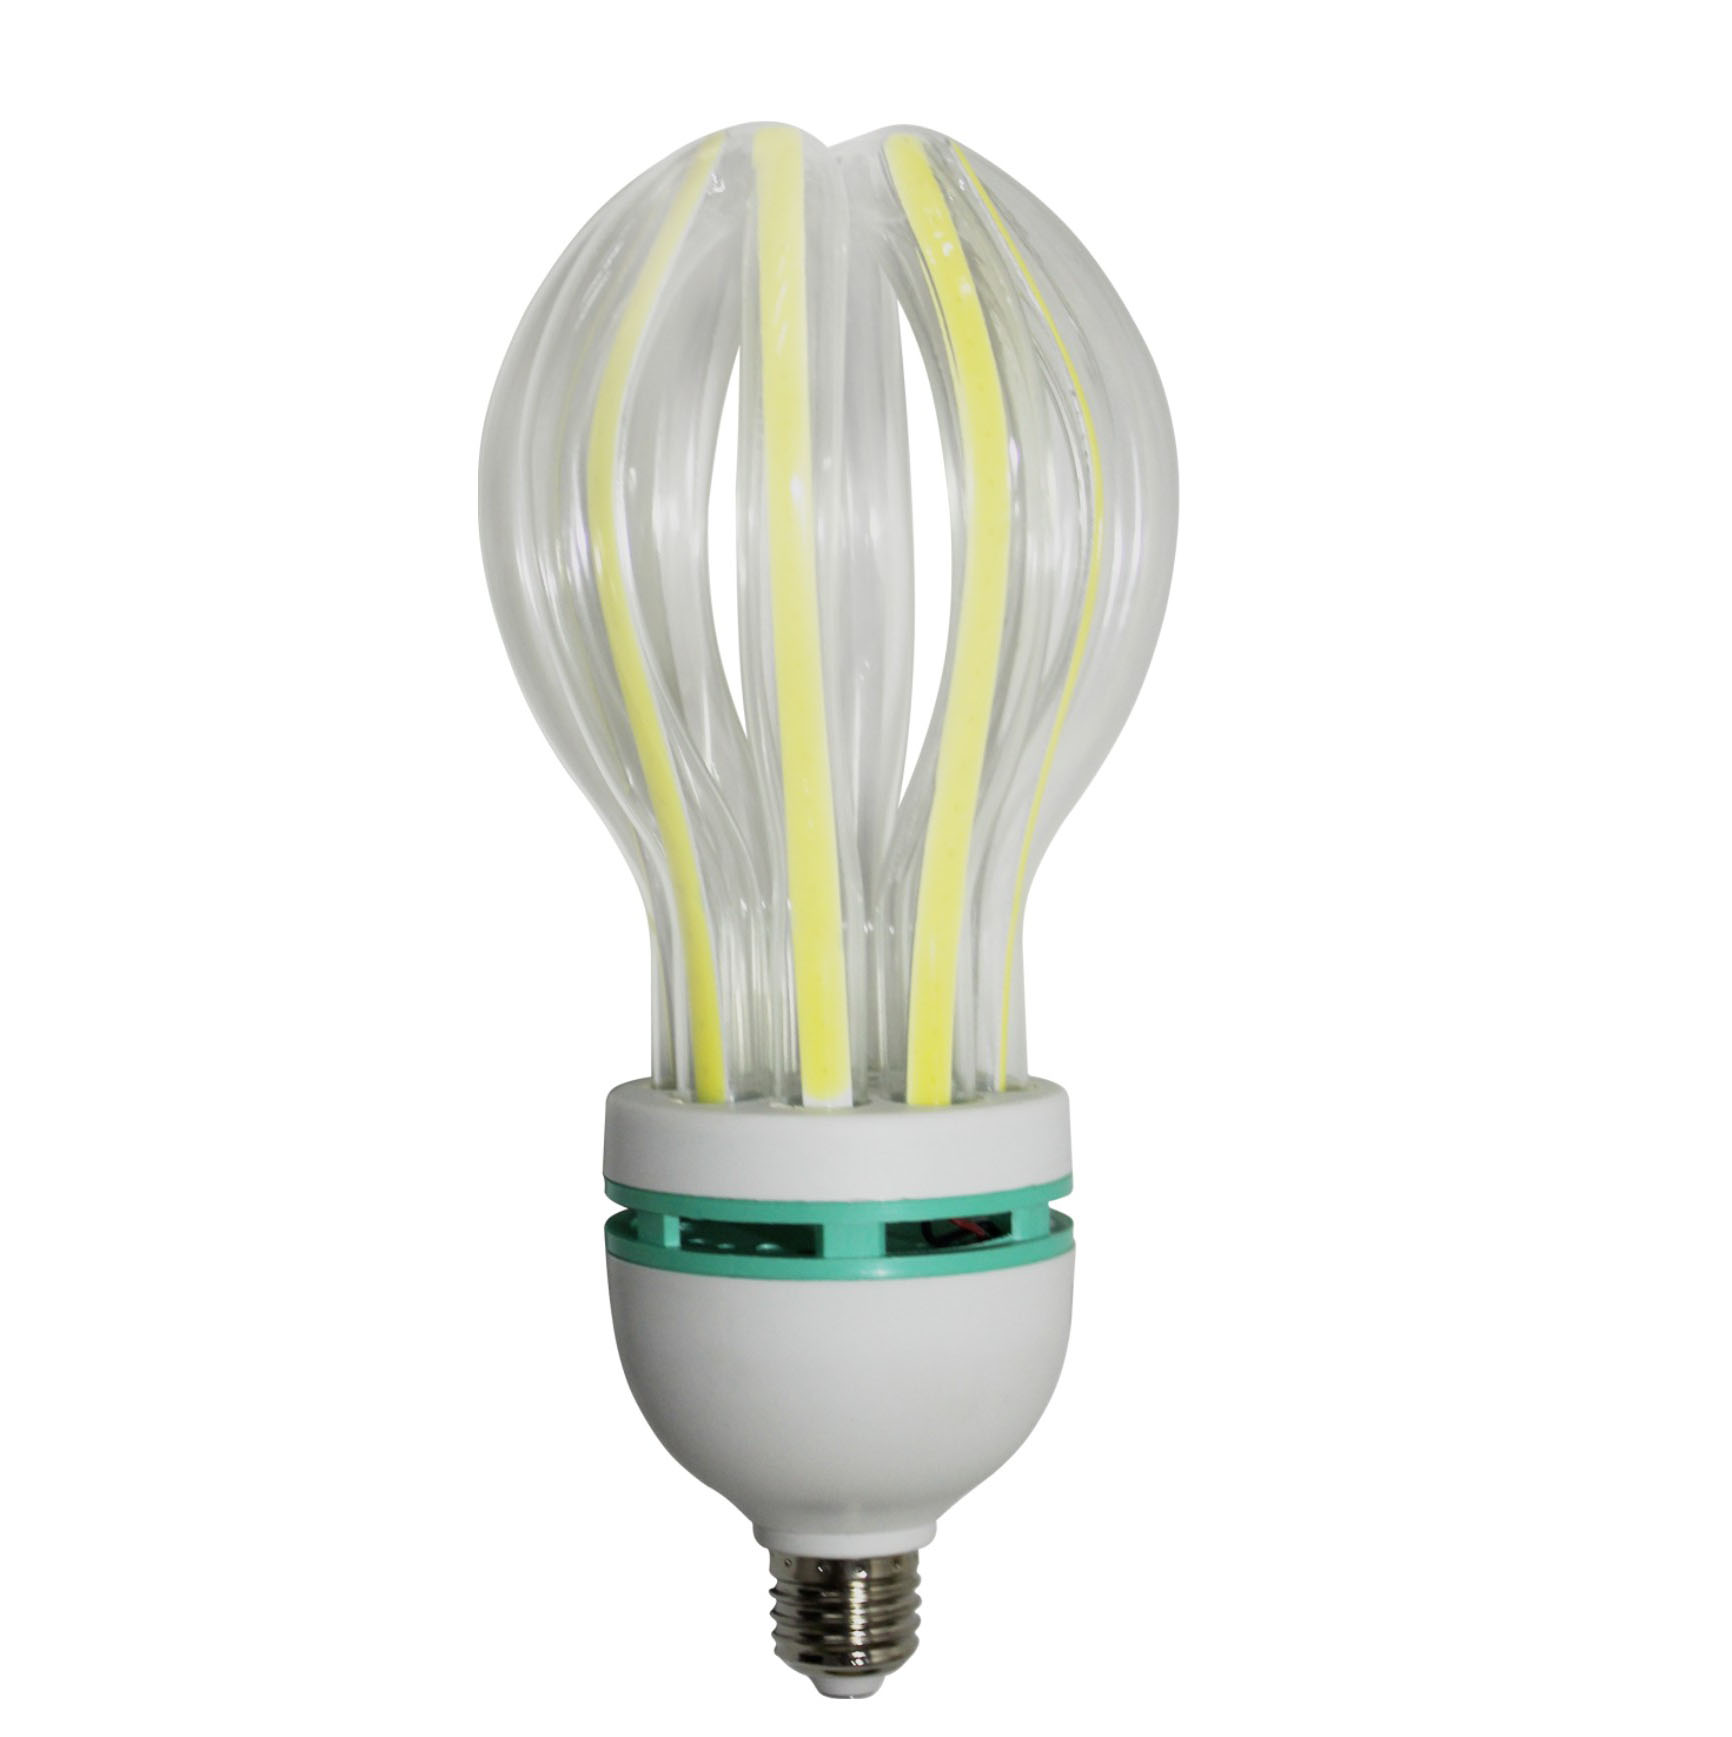 LOTUS TYPE E27 E14 LED Corn Bulb